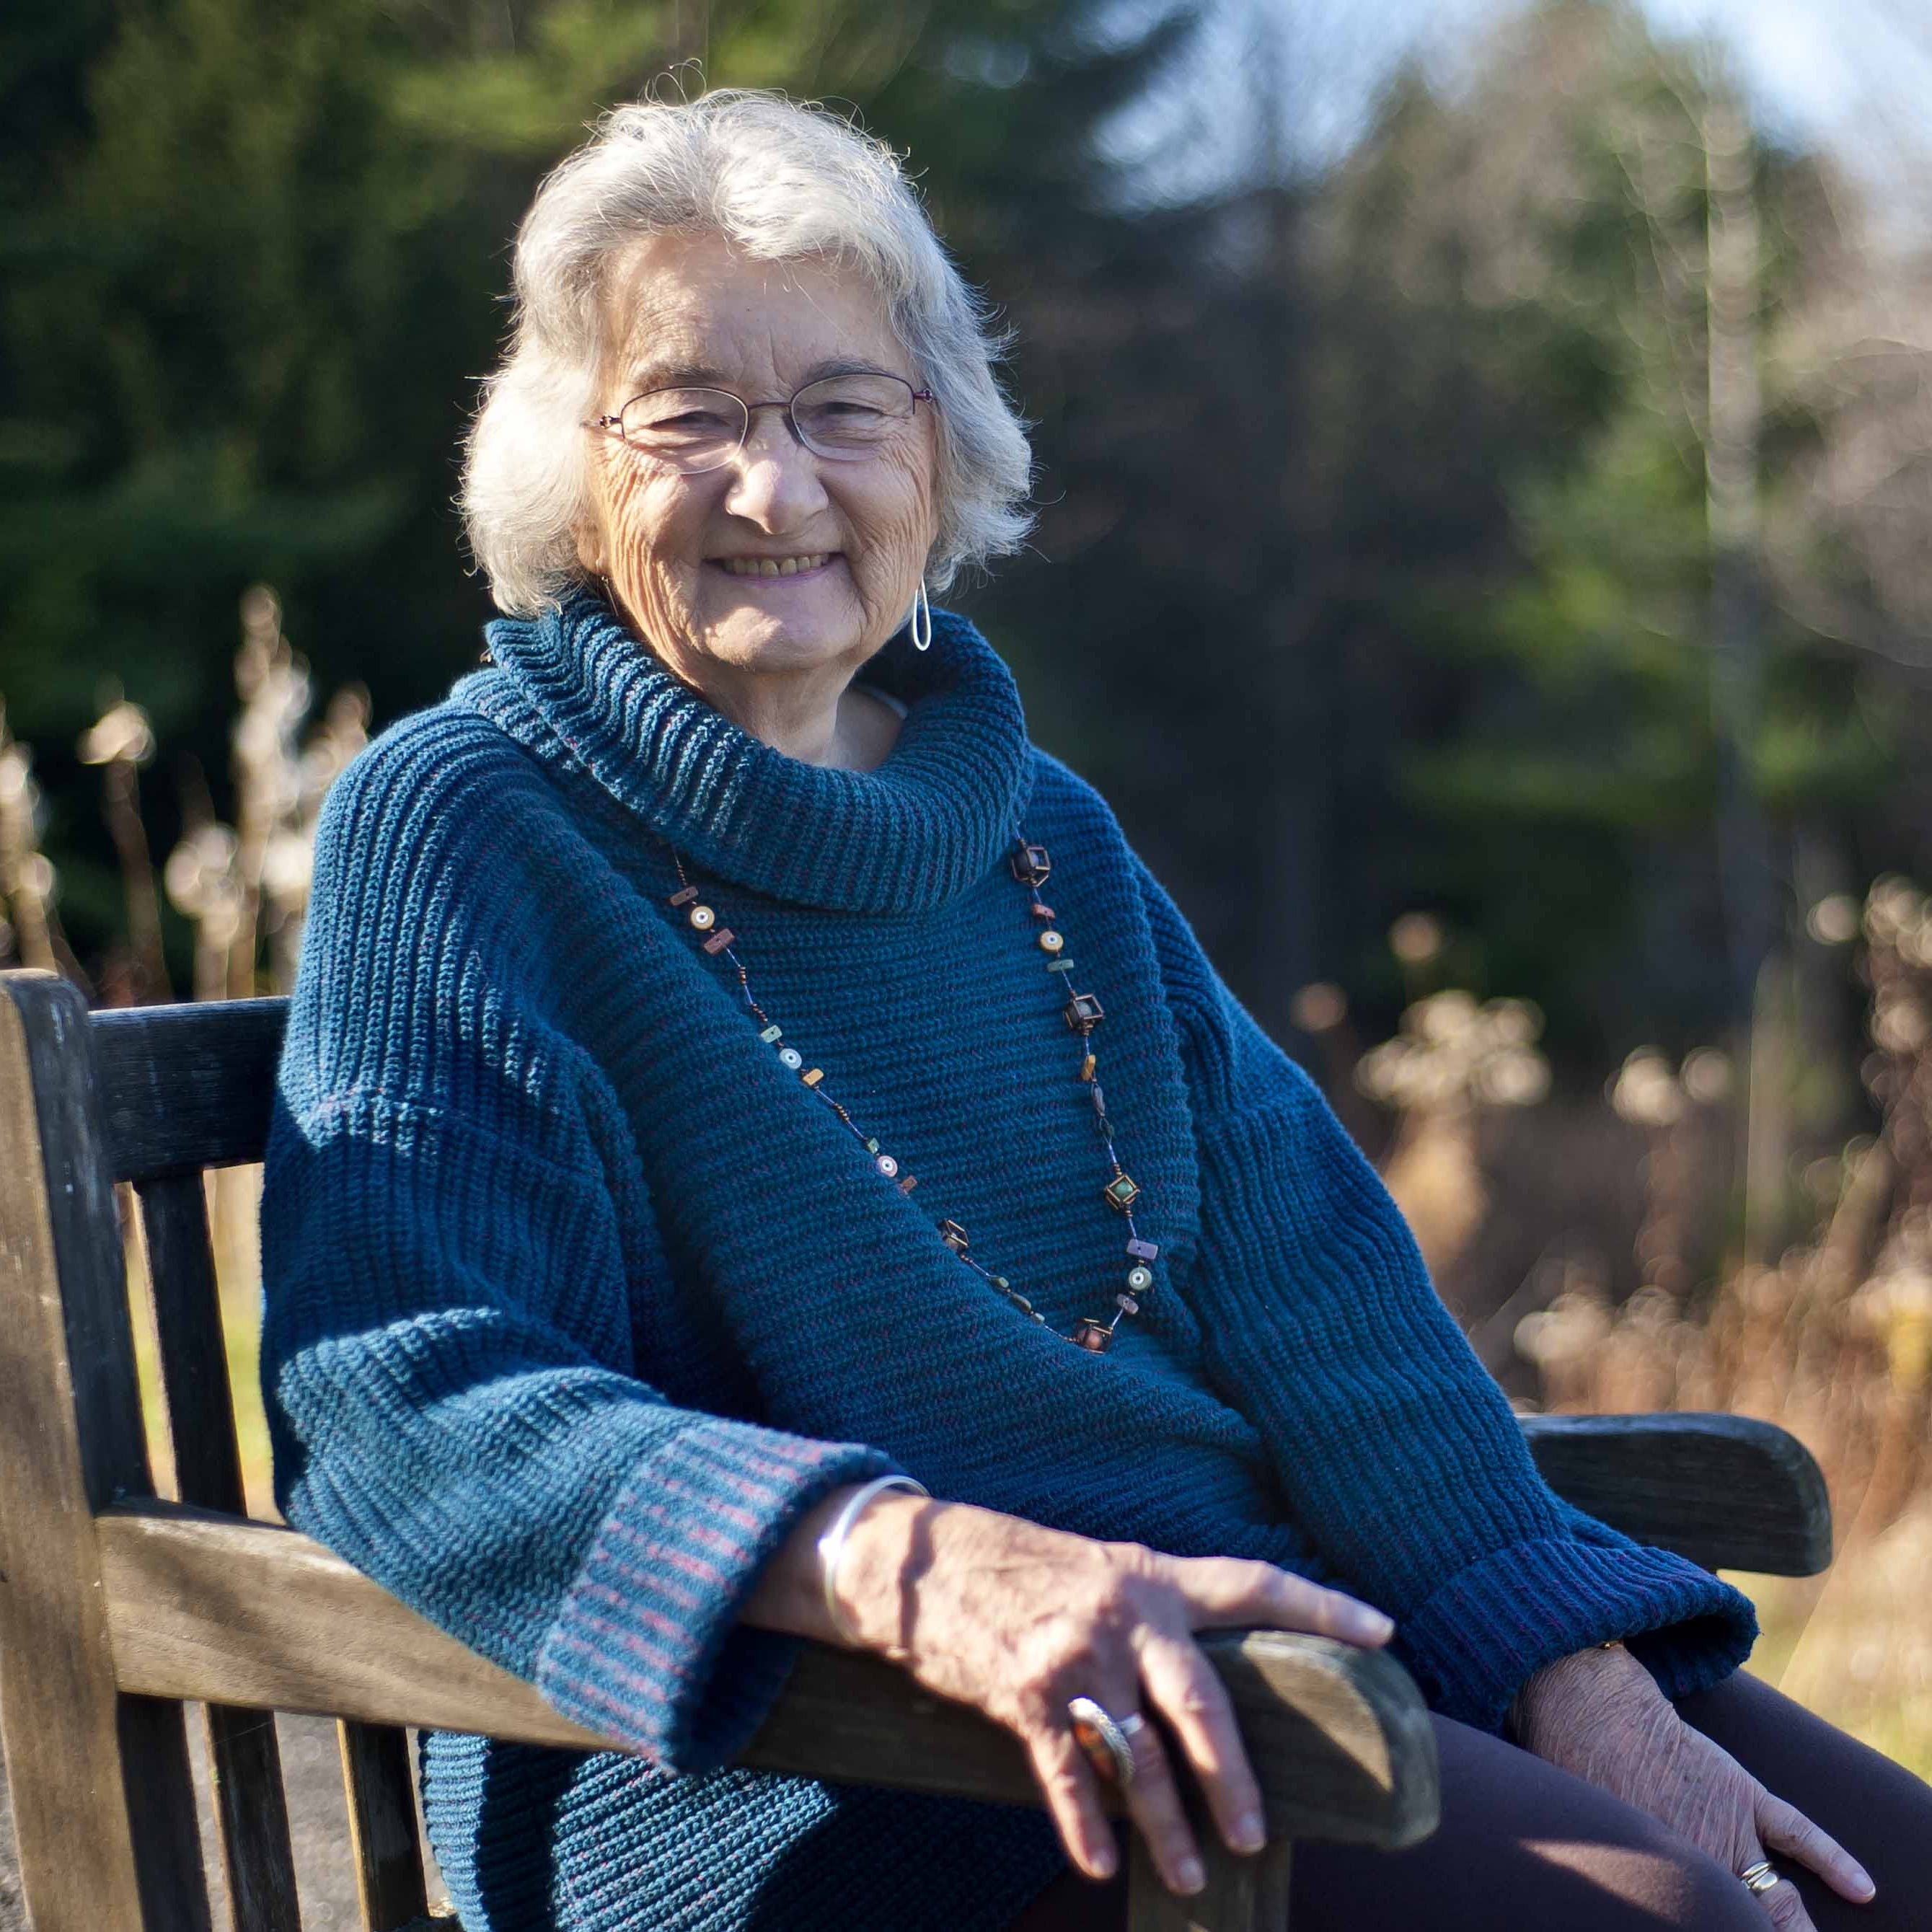 'Bridge to Terabithia' author Katherine Paterson wins E.B. White Award for literature